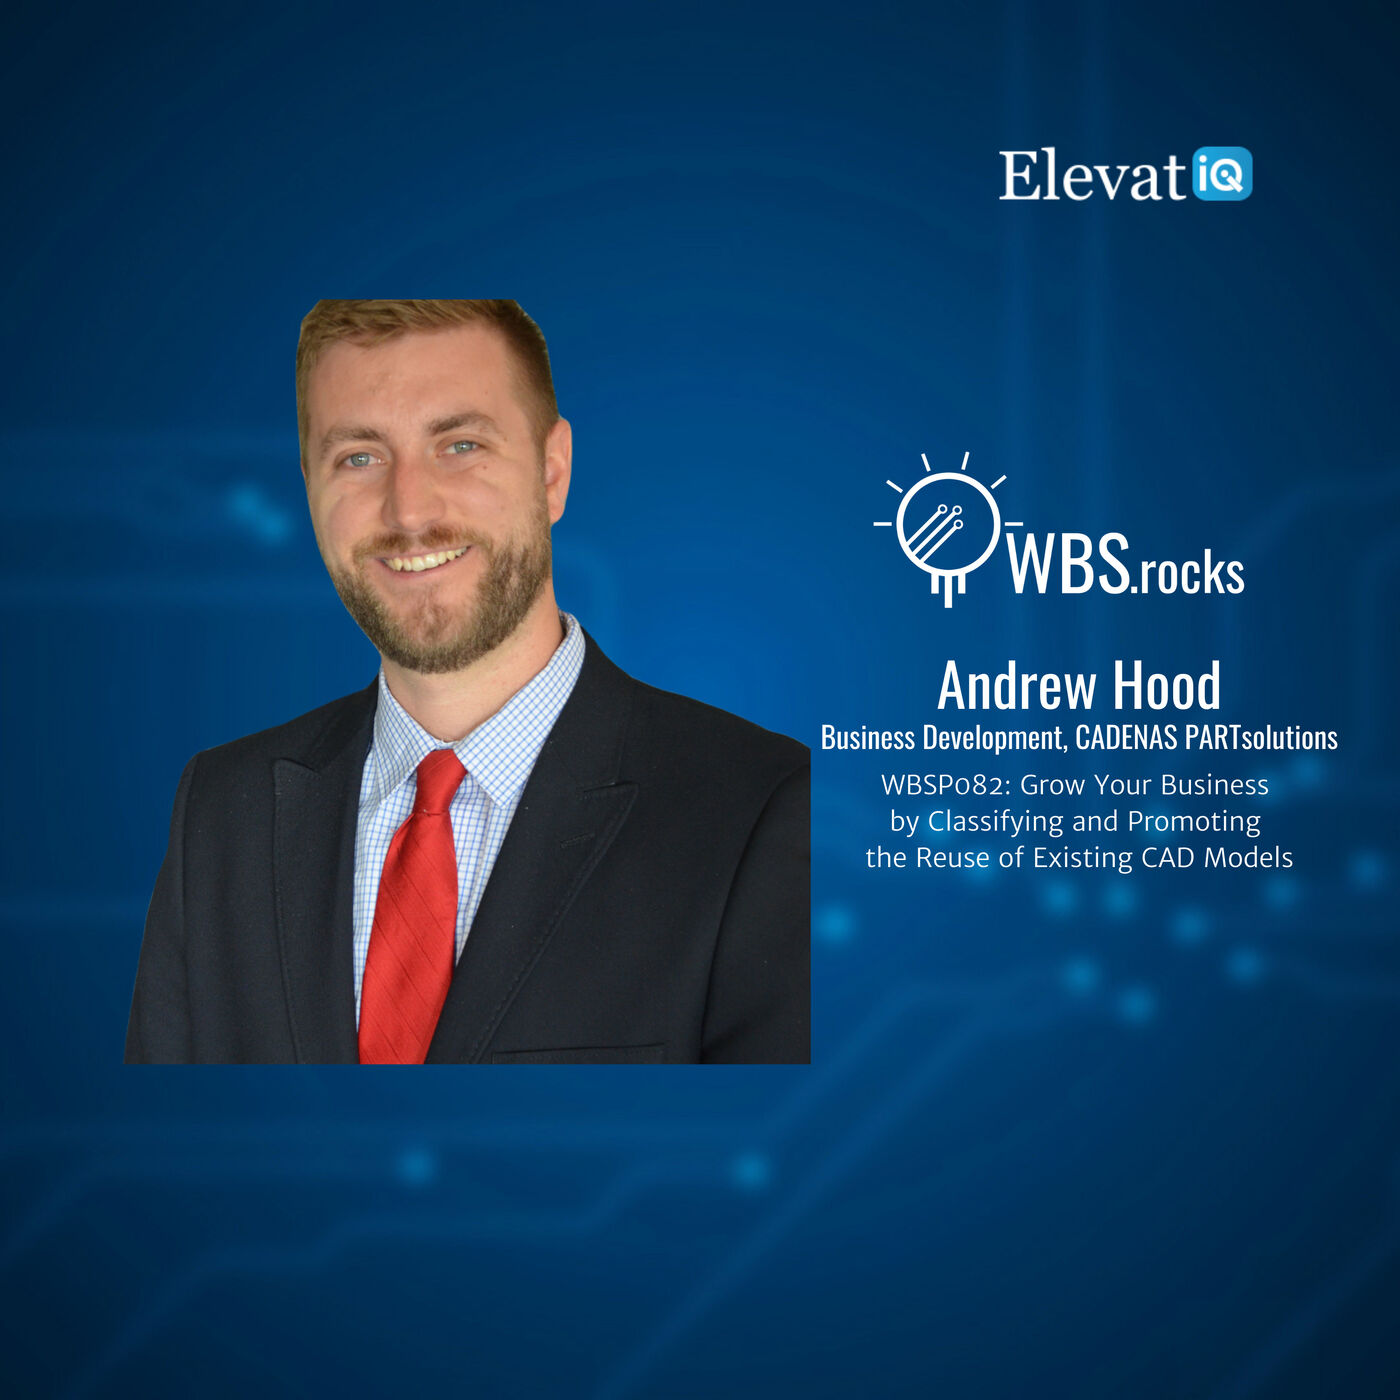 WBSP082: Grow Your Business by Classifying and Promoting the Reuse of Existing CAD Models w/ Andrew Hood